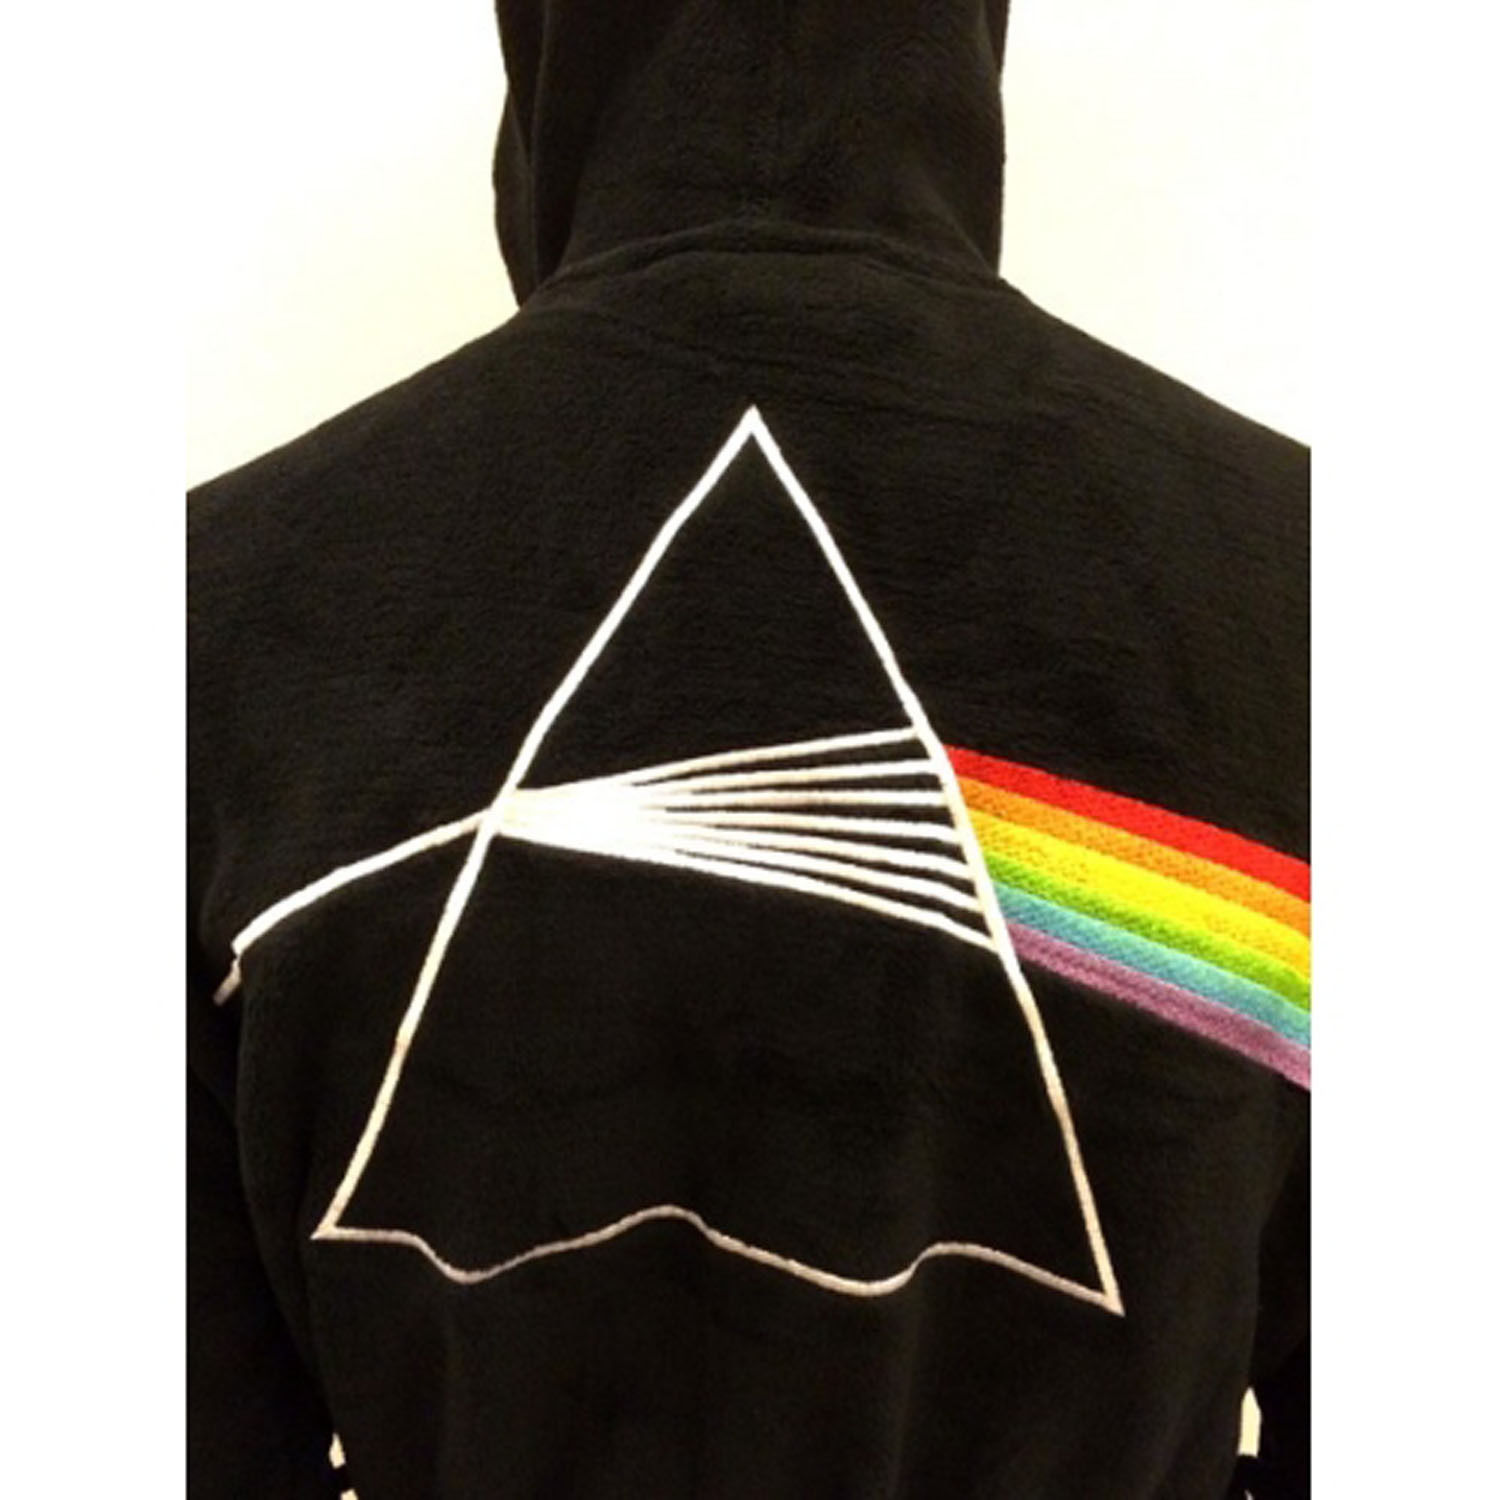 Pink Floyd Fleece Bathrobe Suitable for Bath Robe or Gown Premium Quality New